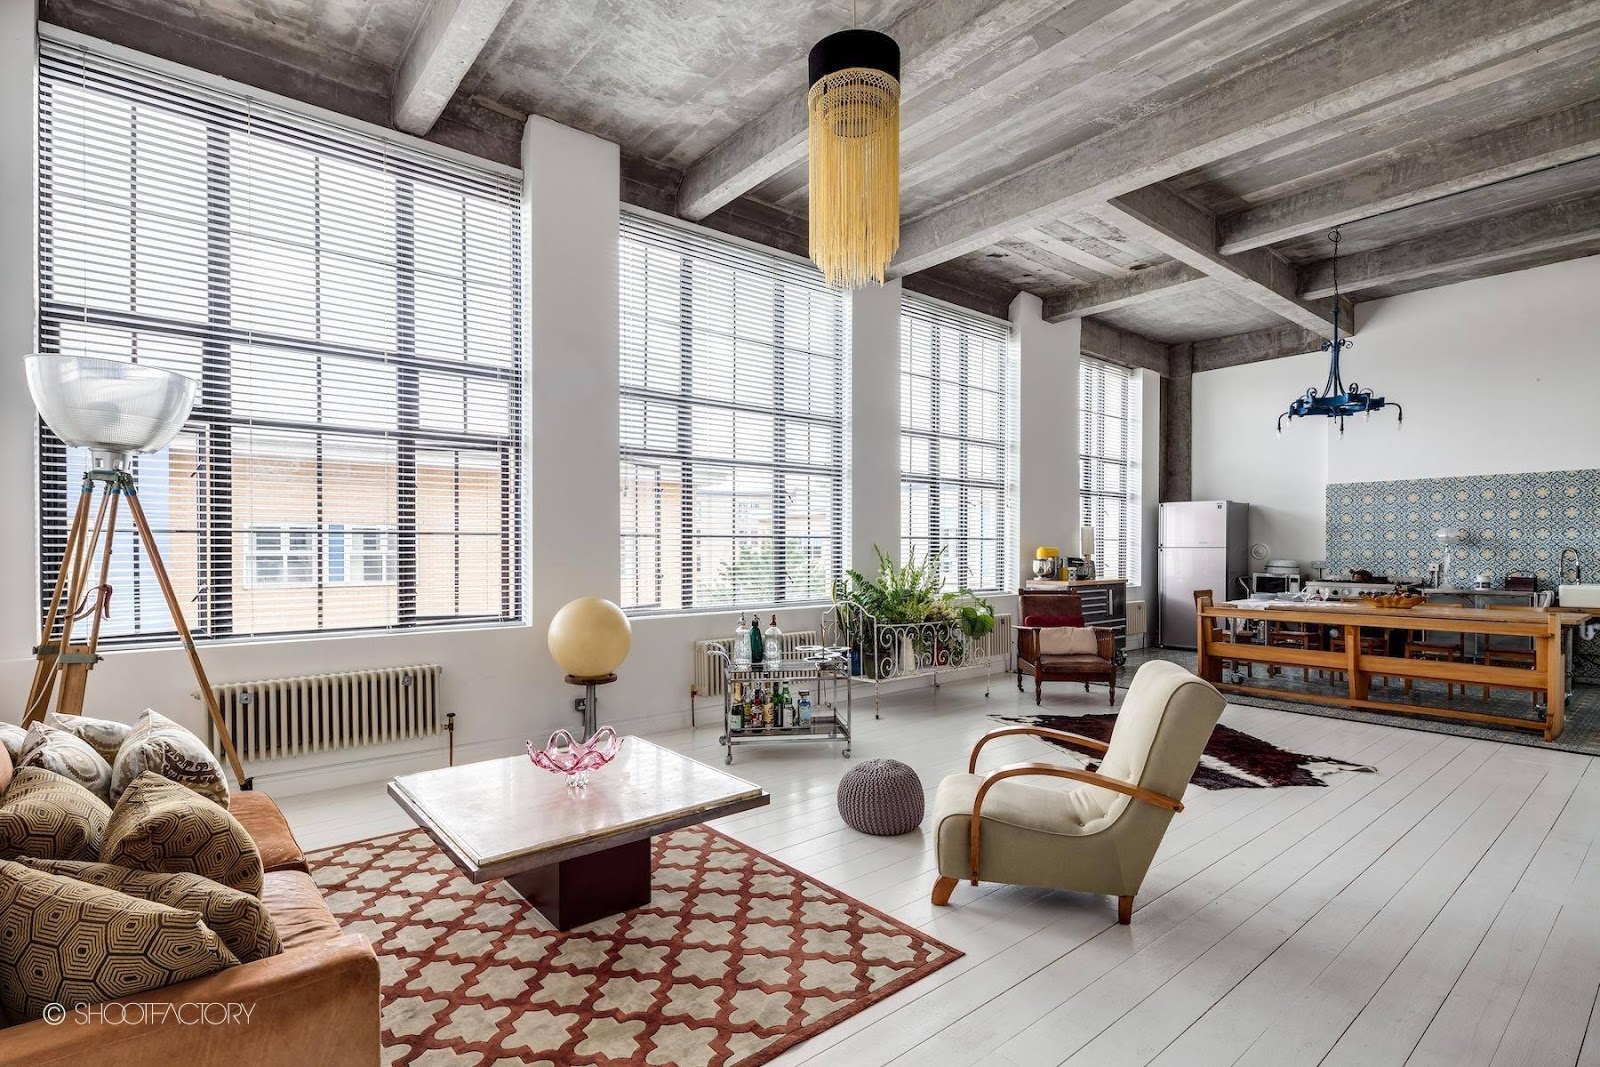 Loft Amenagement Interieur Interior Loft Industrial Retro Muy Personal En Londres